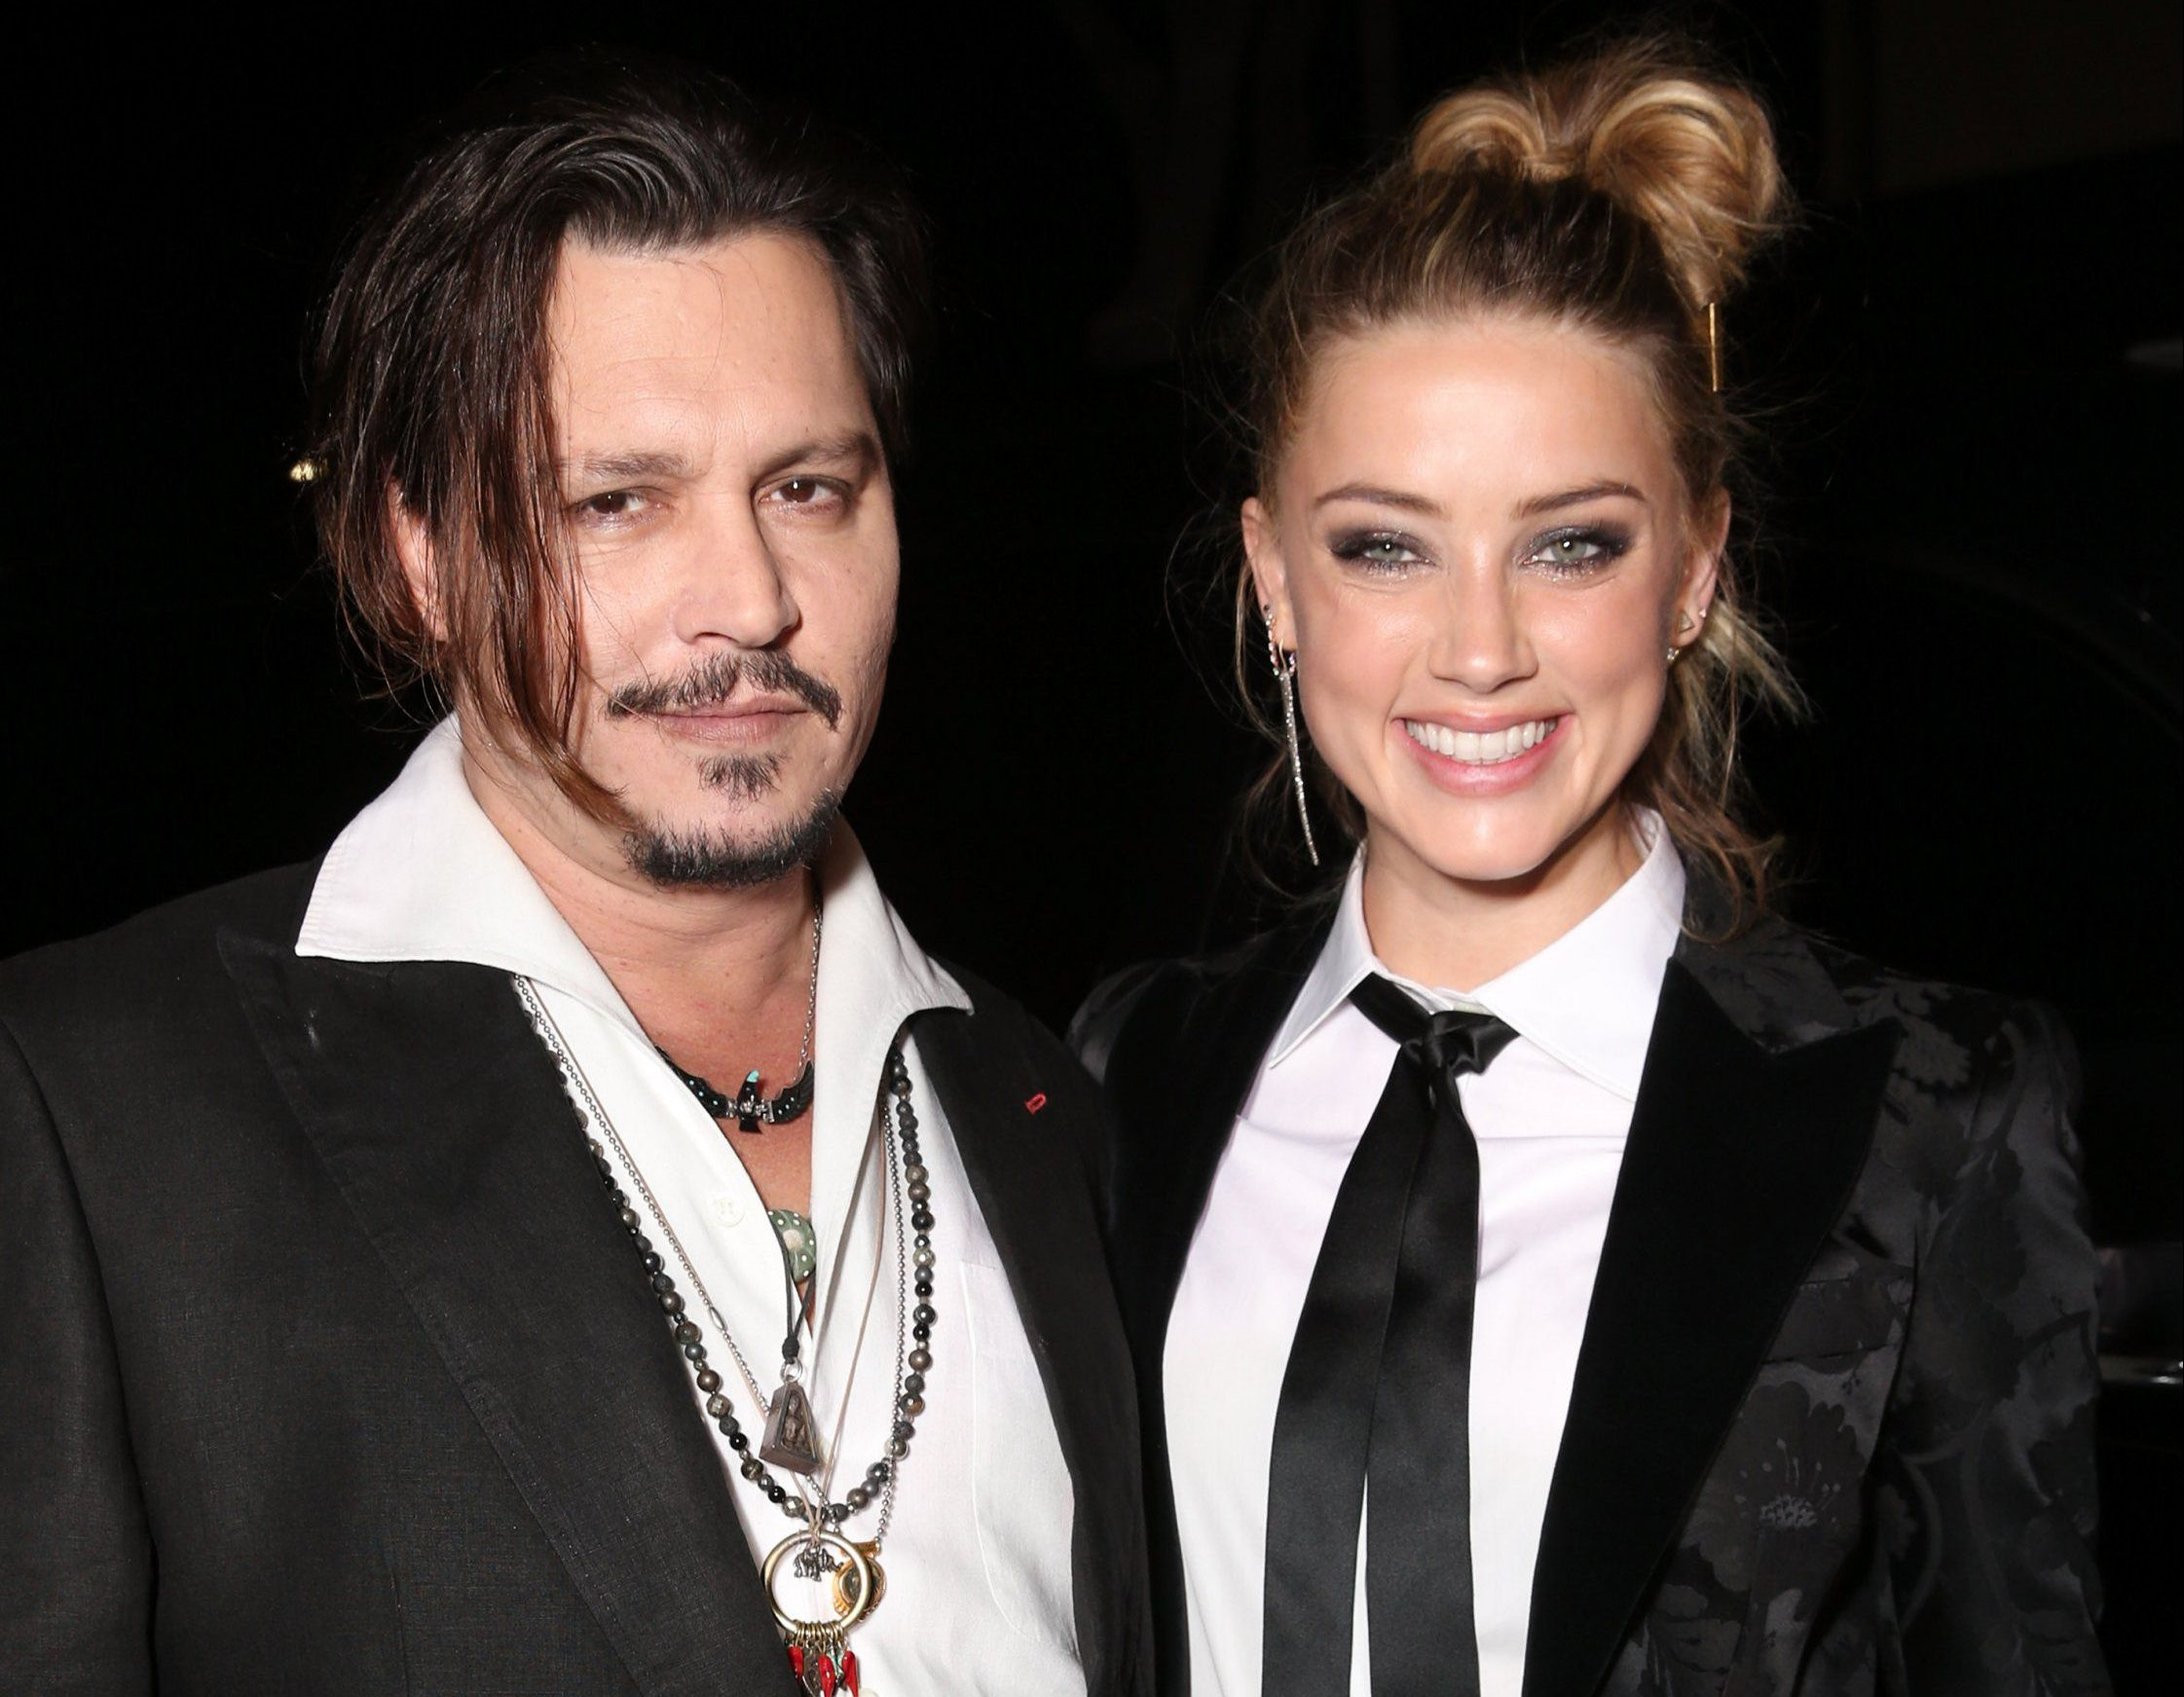 Amber Heard waited 10 hours to give her deposition before Johnny Depp's lawyers stopped her